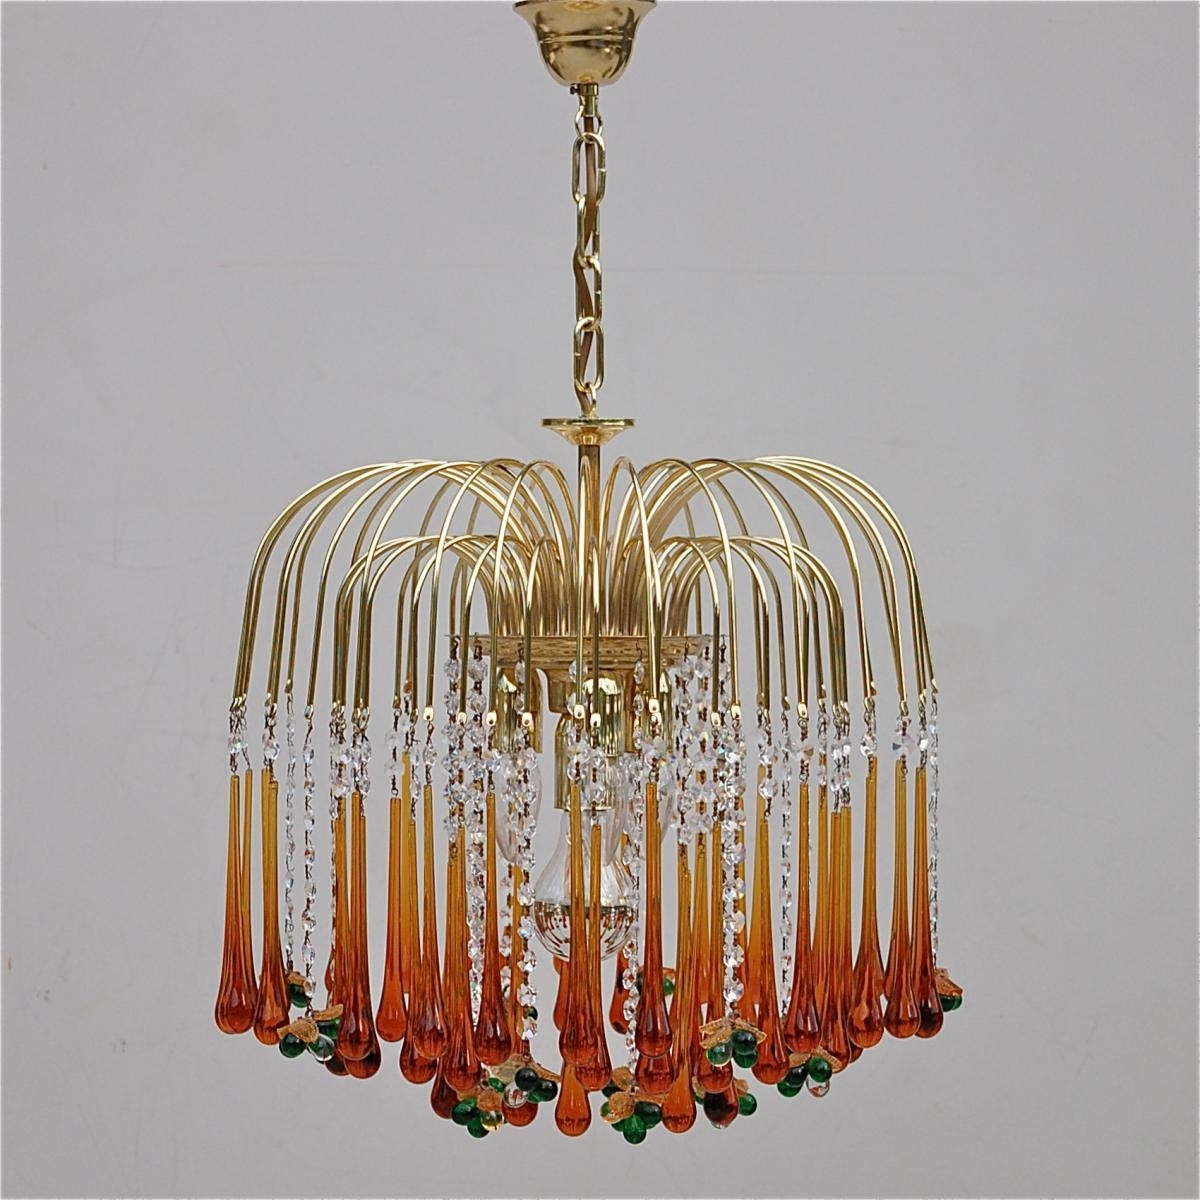 Chandeliers Vintage With Regard To Fashionable Vintage Teardrop And Fruit Murano Glass Chandelier For Sale At Pamono (View 2 of 20)